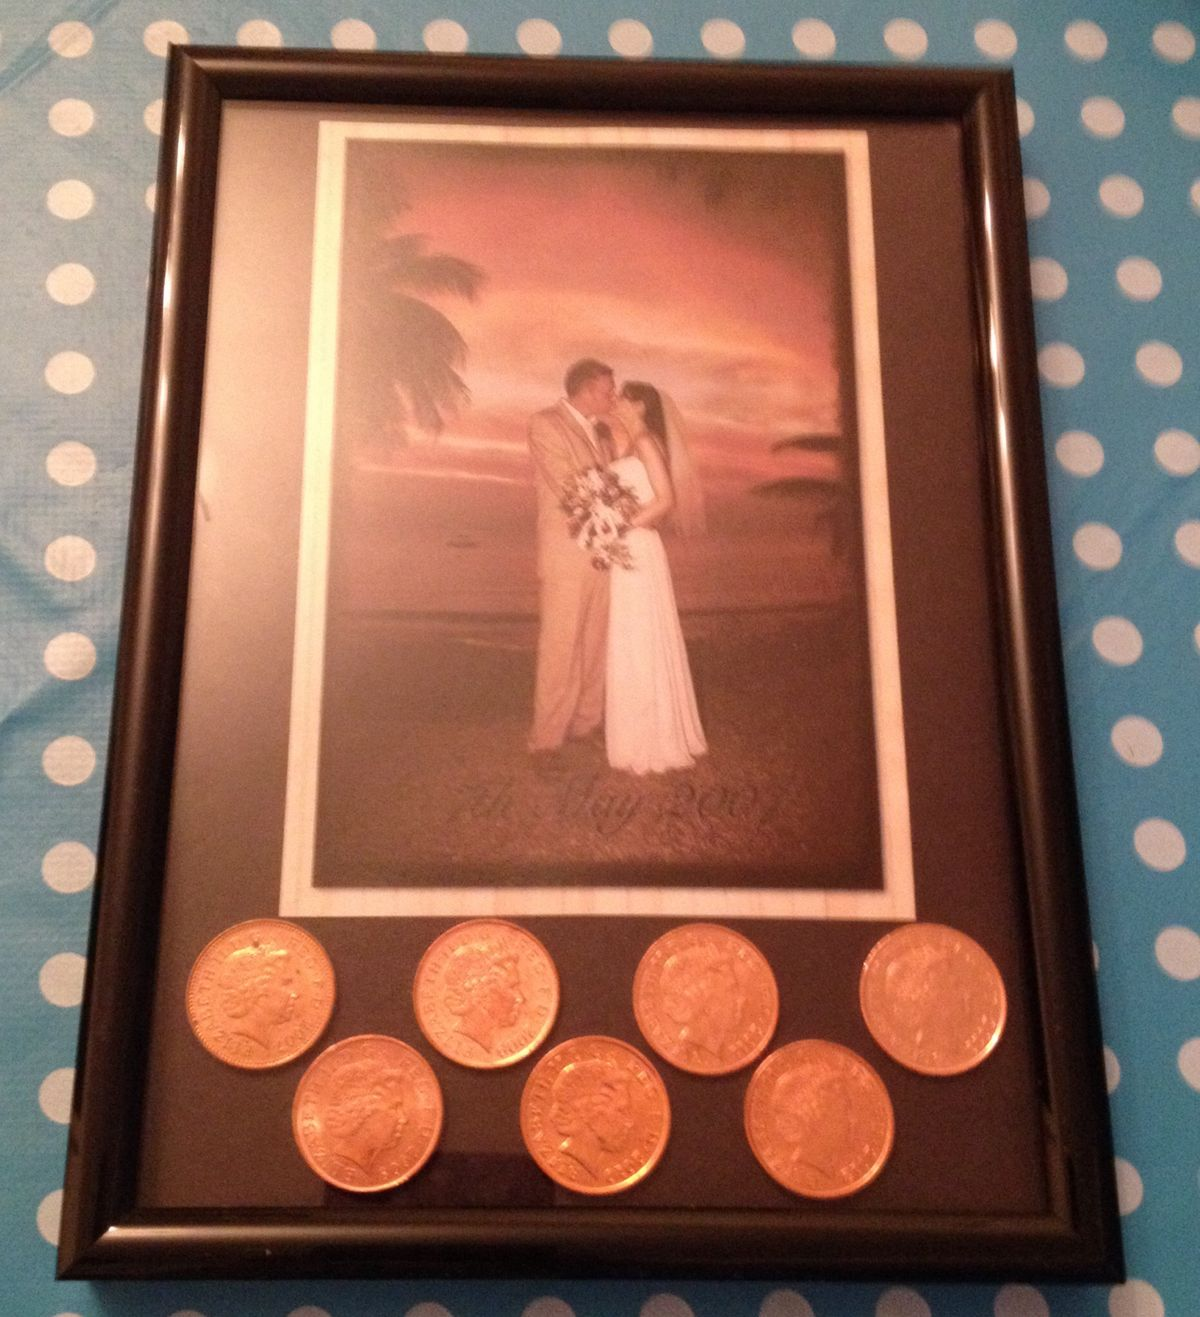 7th Wedding Anniversary Gift Ideas For Her Uk : year wedding anniversary milestone wedding birthday anniversary ideas ...